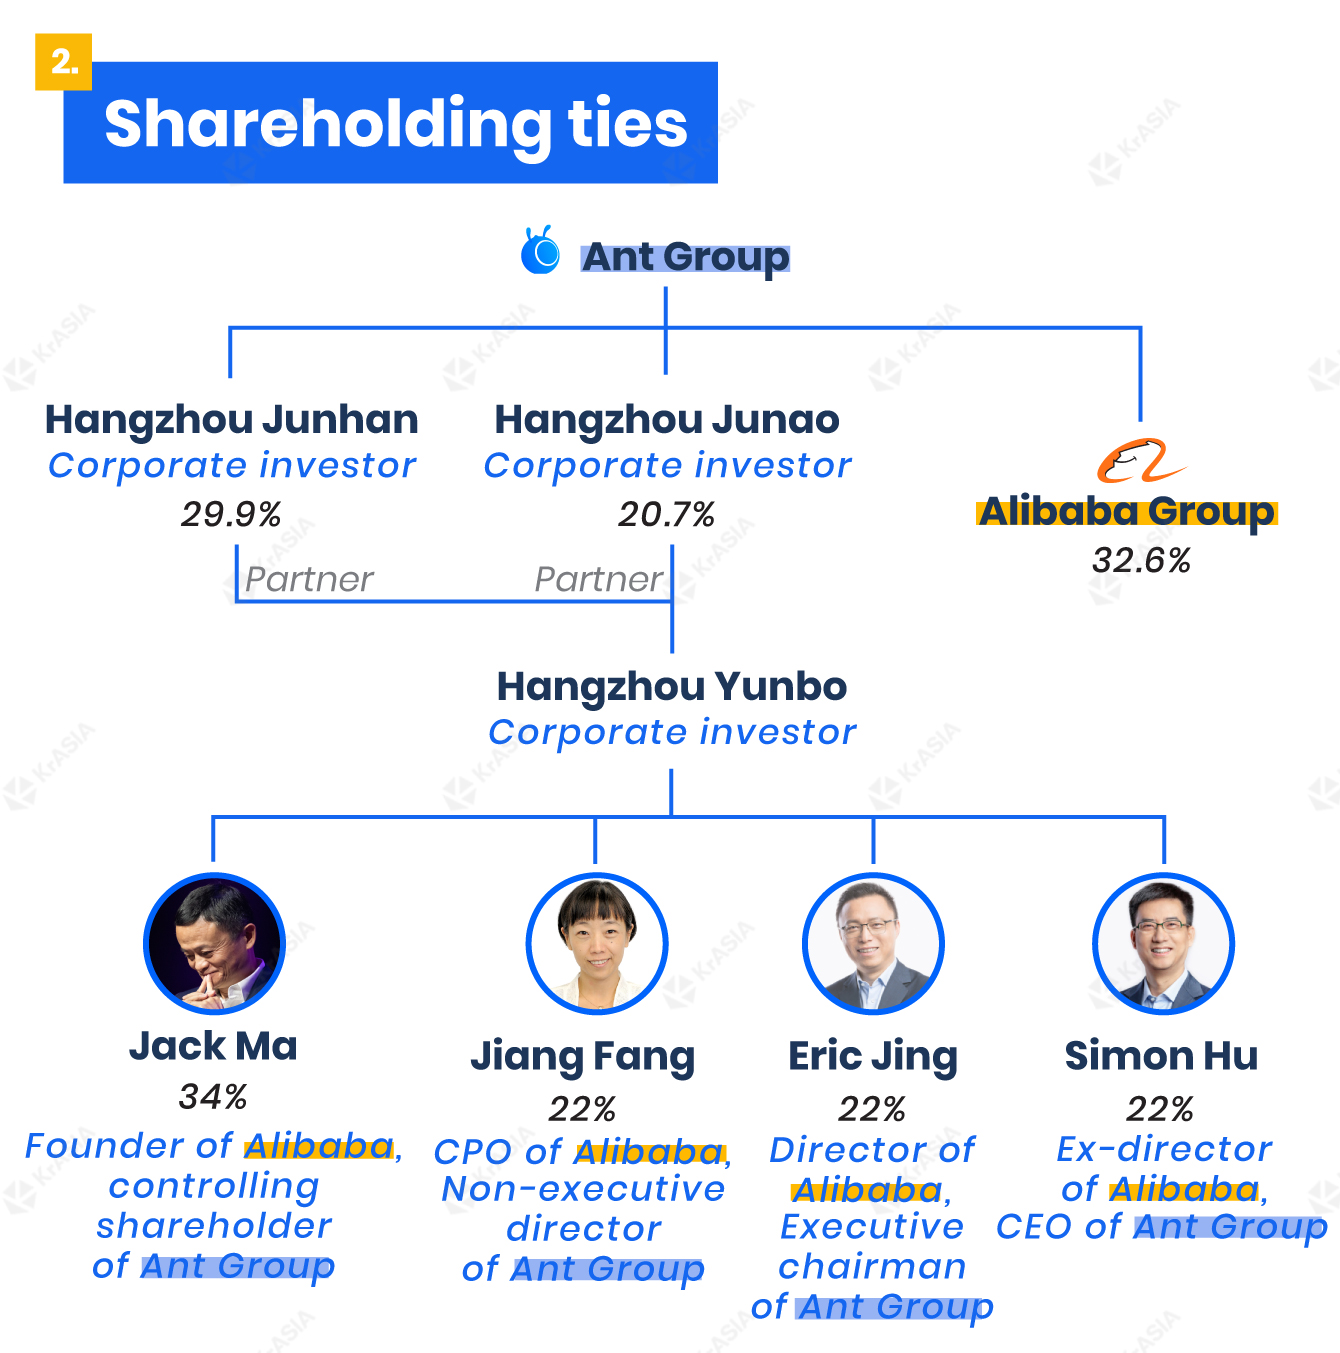 Ant Group's shareholding ties with Alibaba